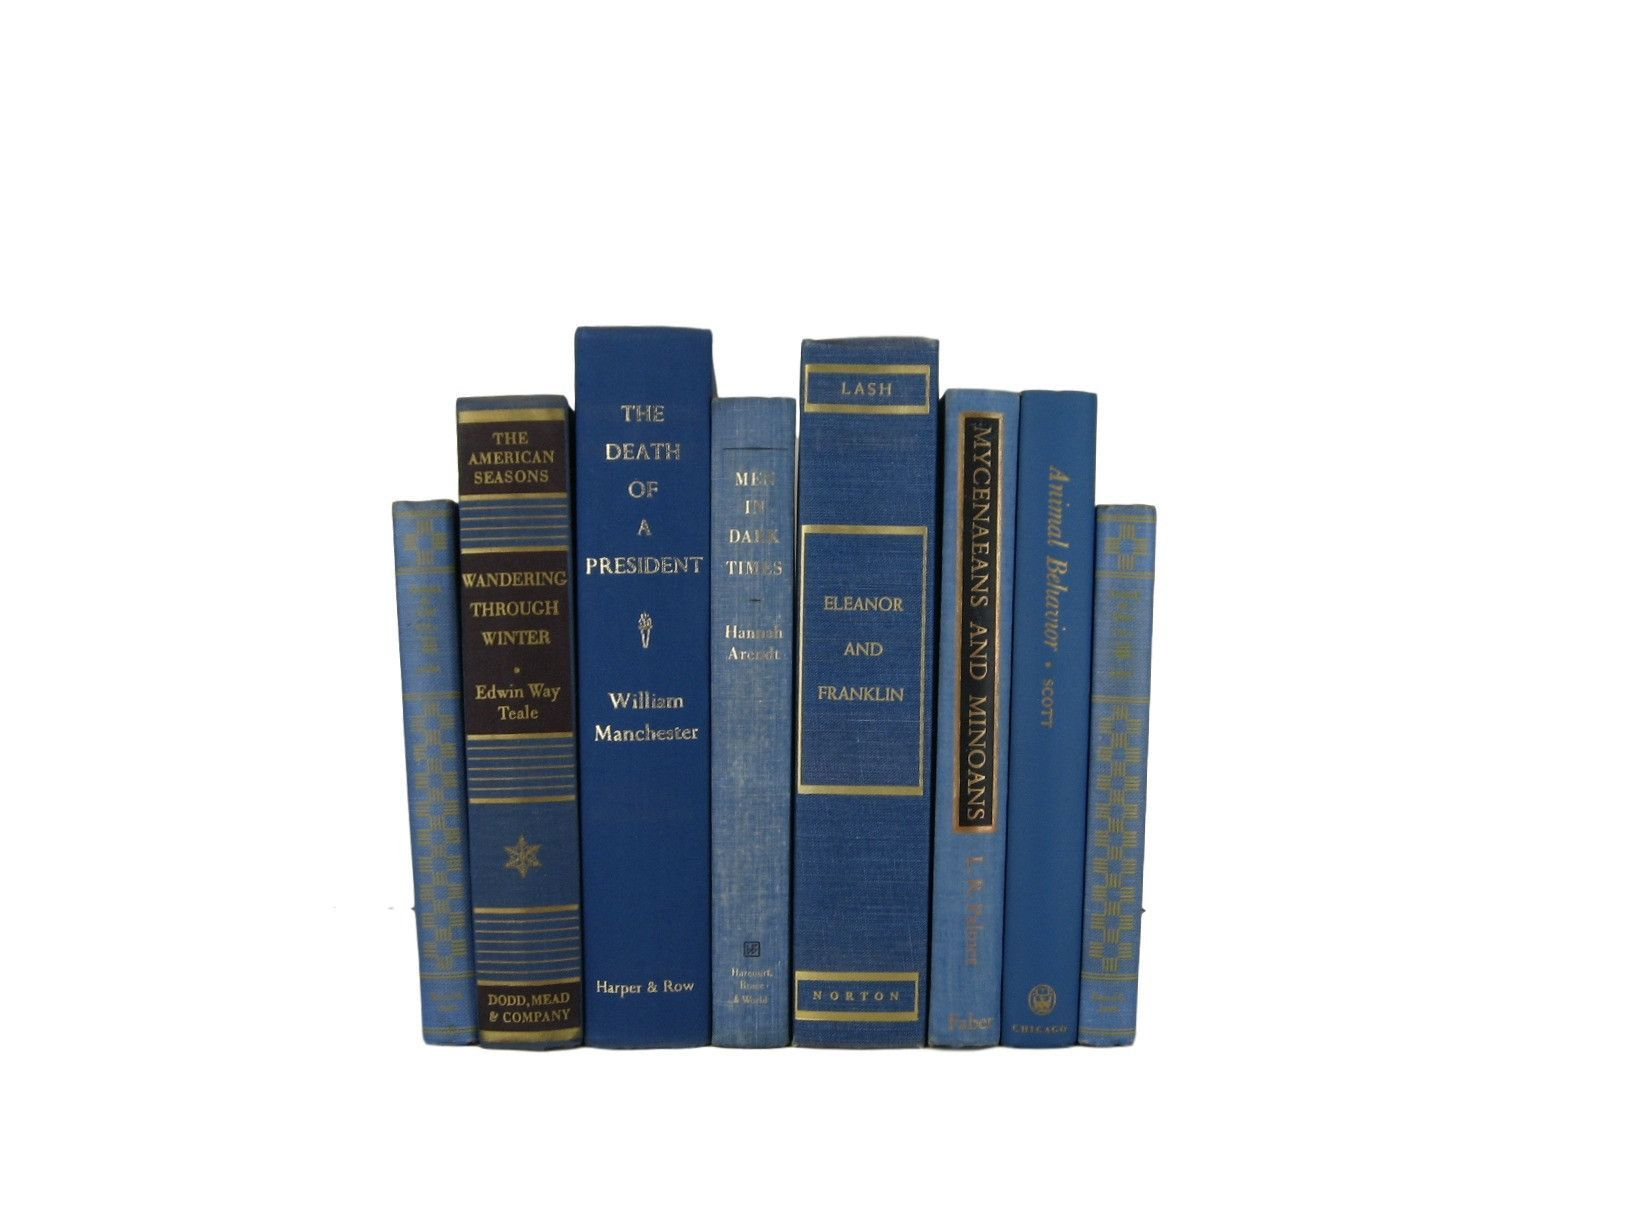 Blue Beautiful Vintage Books, S/8  #bookshelfdecor #DecadesofVintage #booksbycolor #bookhomedecor #decorativebooks #vintagehomedecor #oldbooks #stagingprop #vintagebooks #homedecor